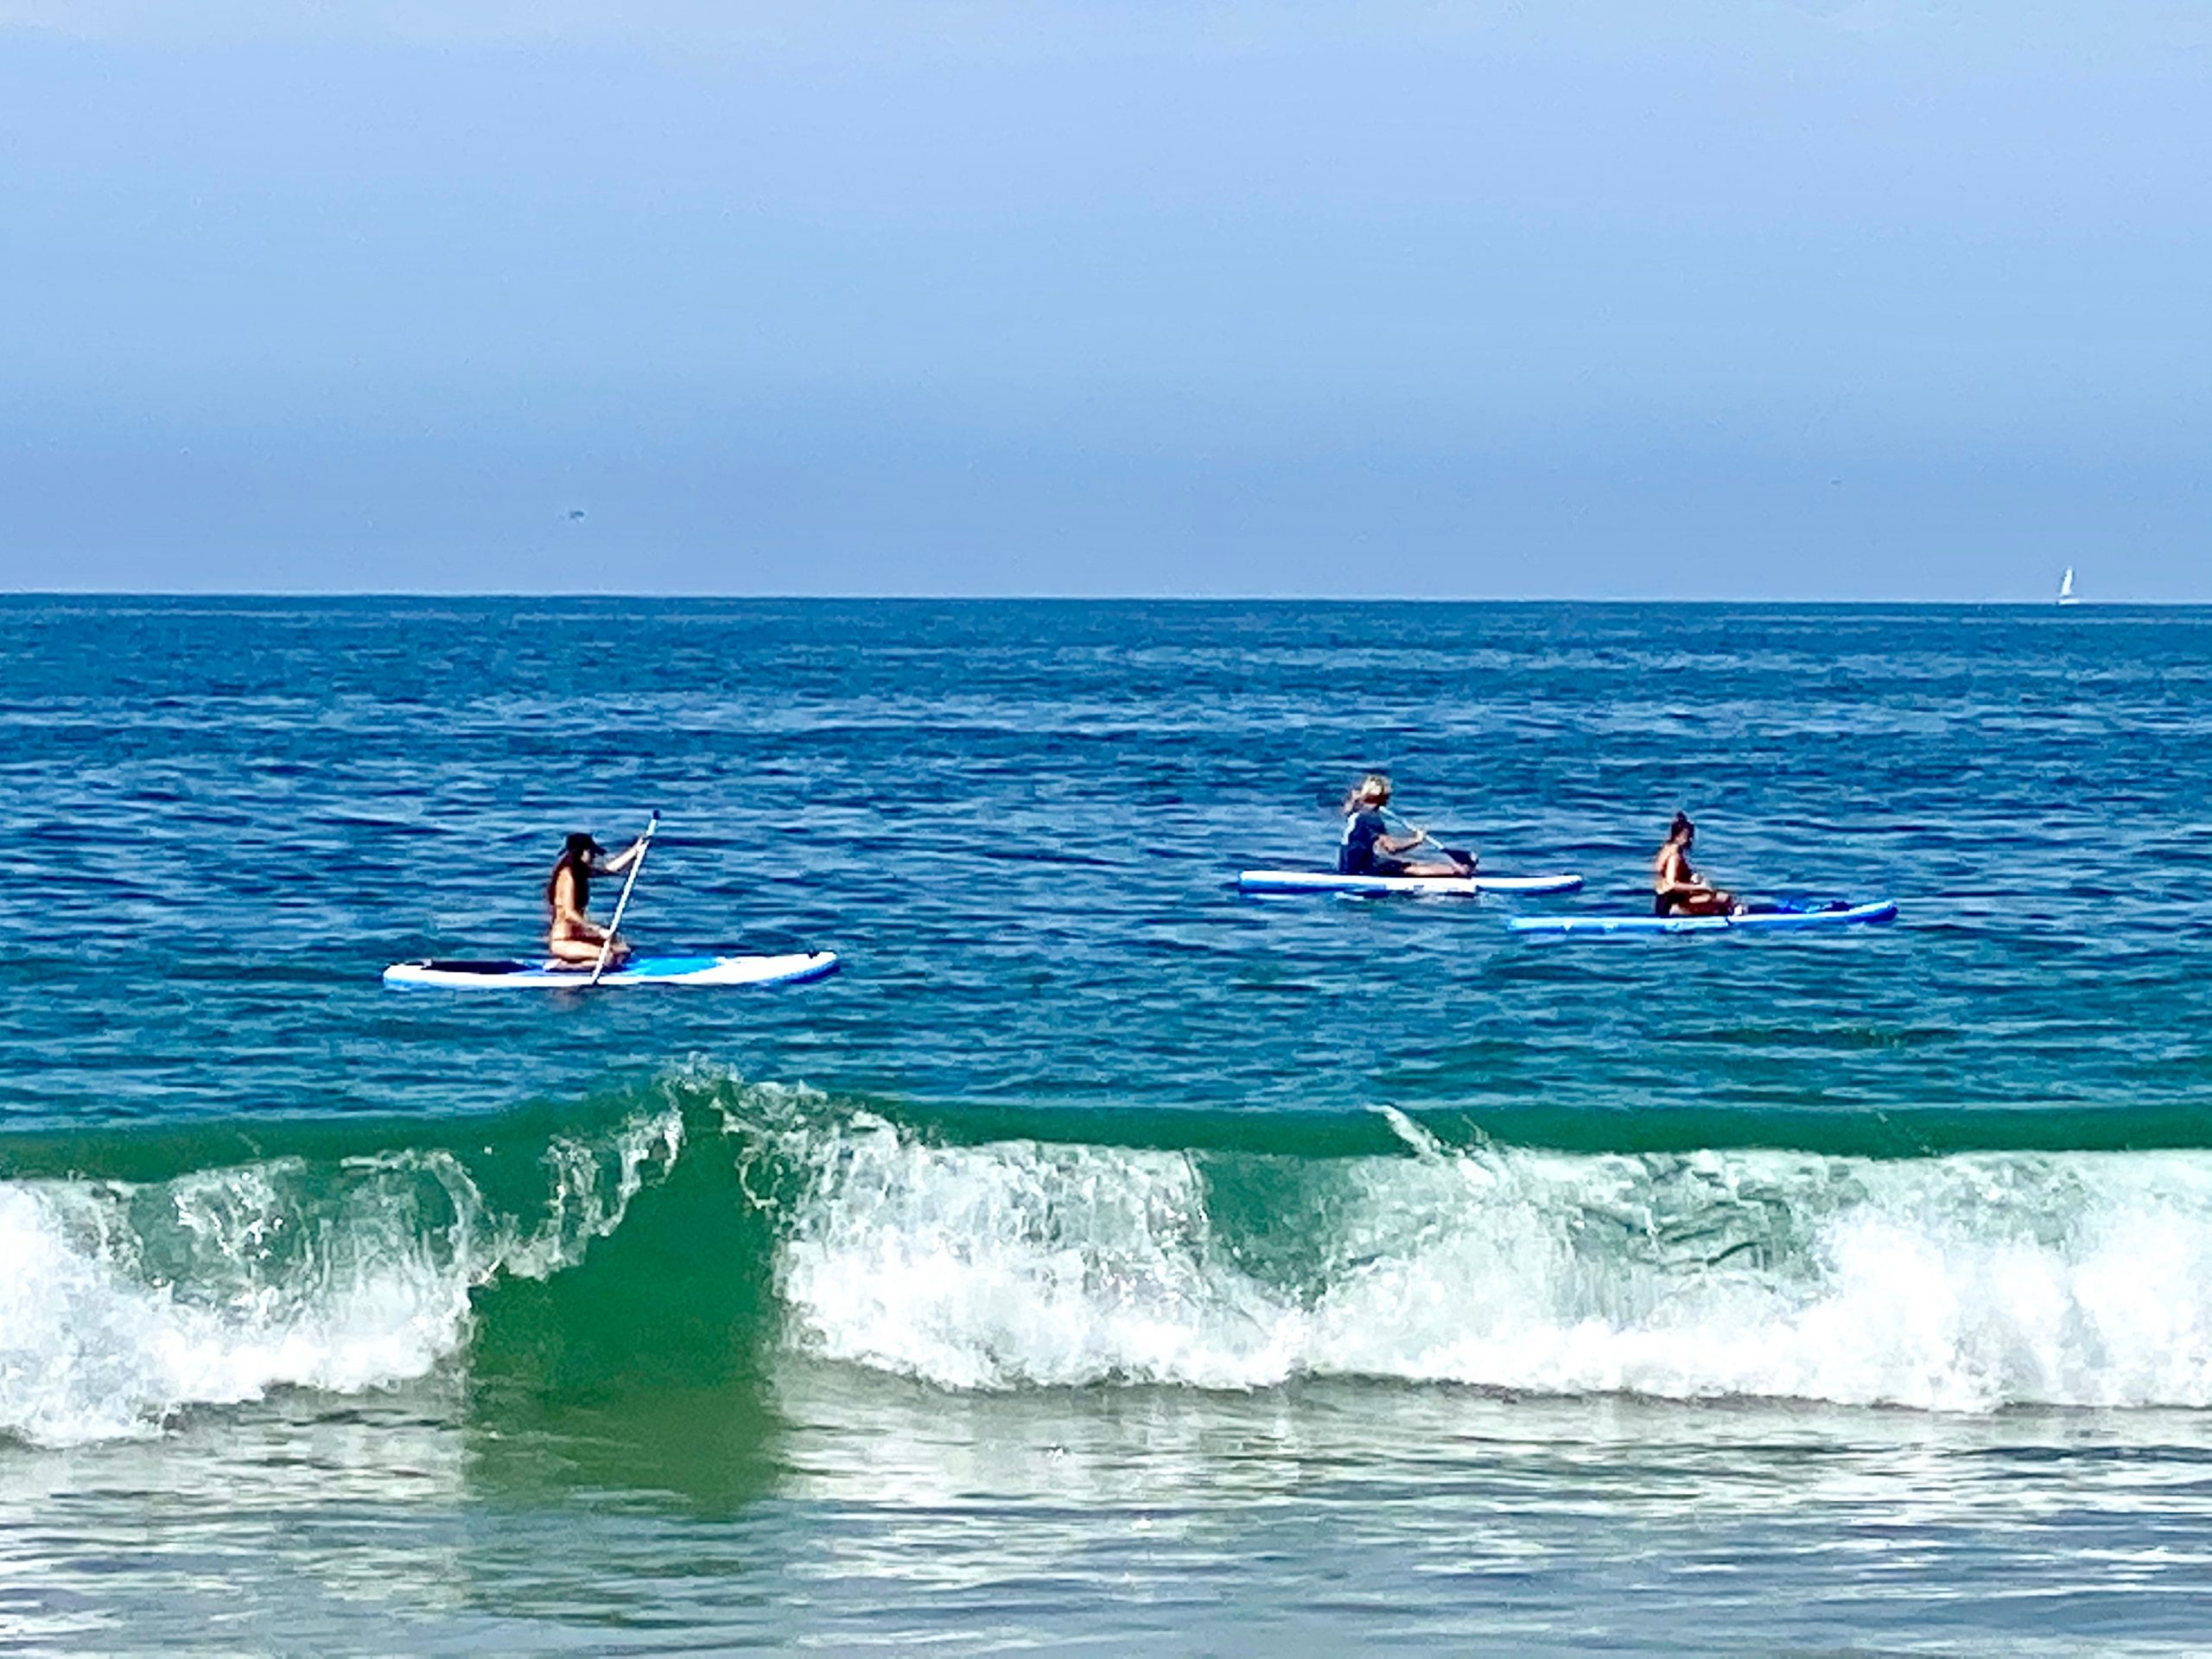 Stand up paddleboard lessons at the Monarch Beach Resort in Dana Point, CA